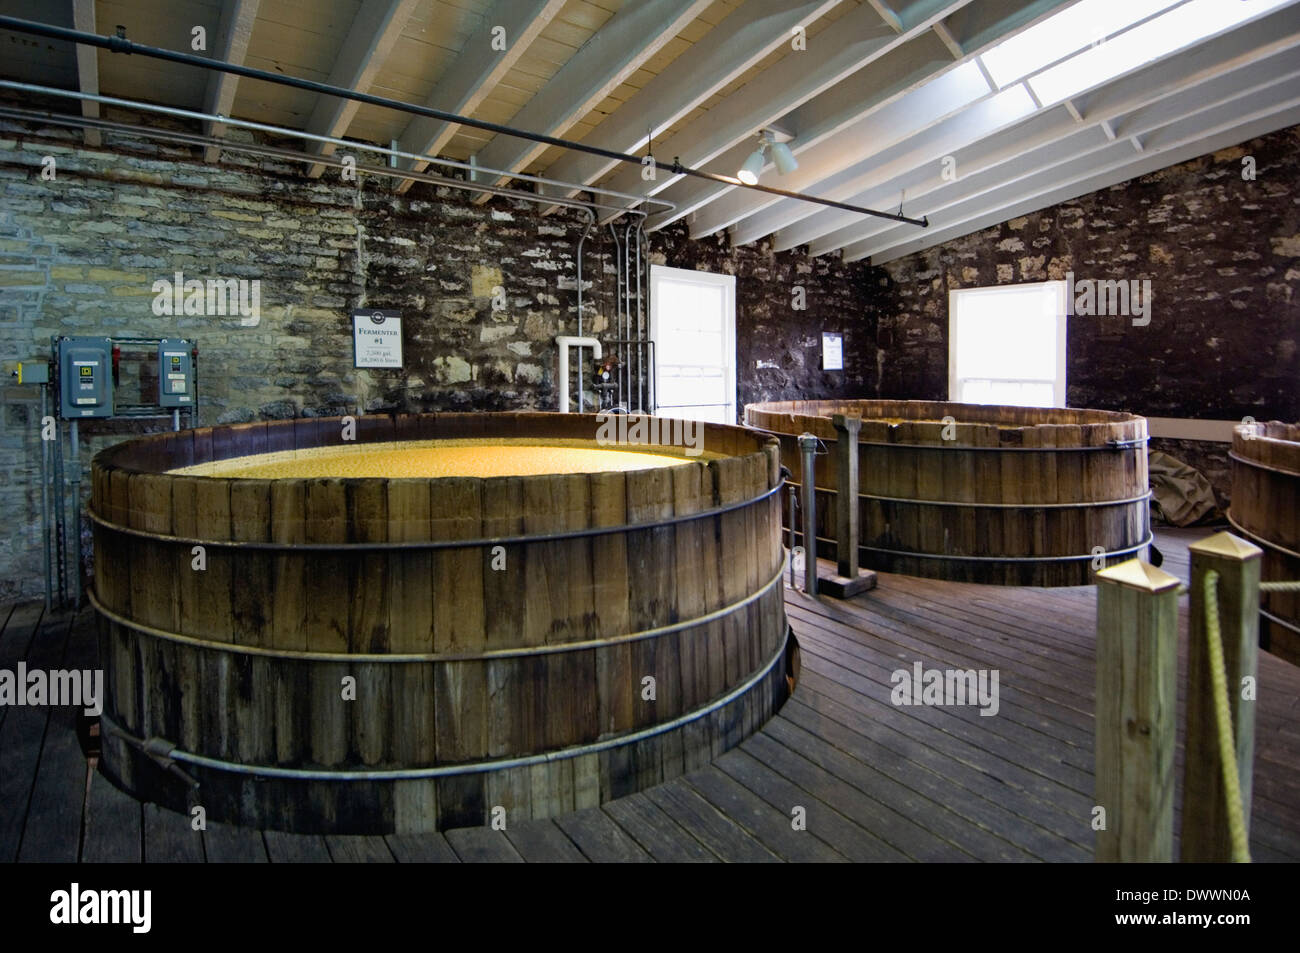 Woodford Reserve Stock Photos & Woodford Reserve Stock